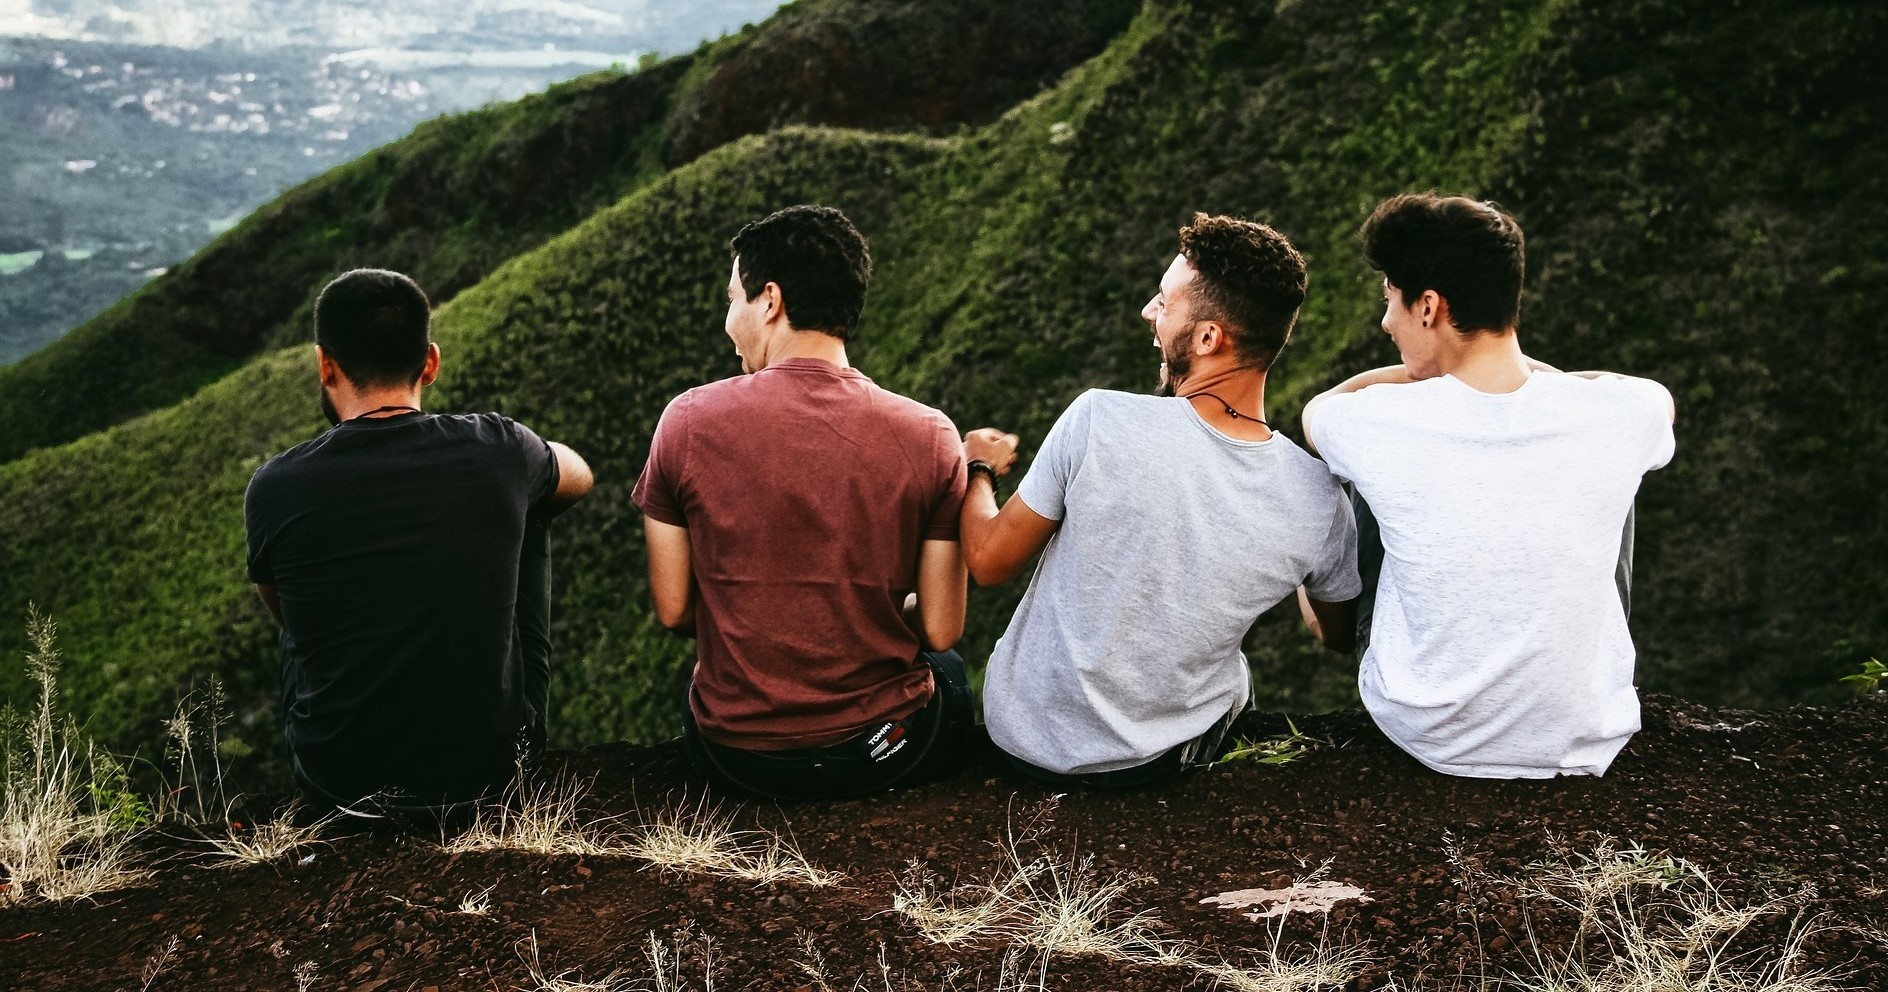 Four friends laughing and hanging out outside